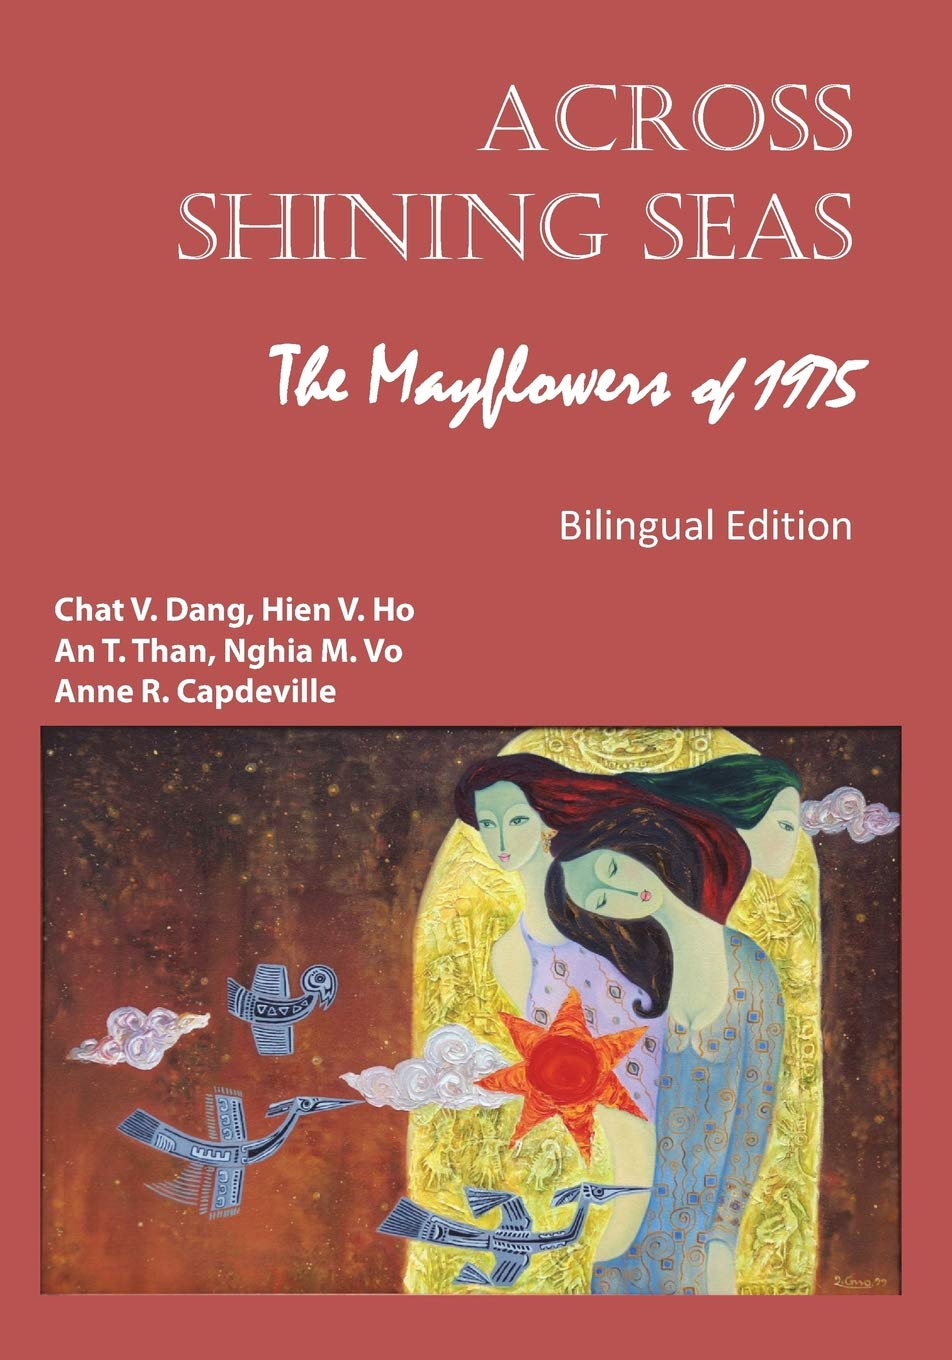 Download Across Shining Seas: The Mayflowers of 1975 - Bilingual Edition: 1975: Nhung Con Thuyen Lac Viet PDF